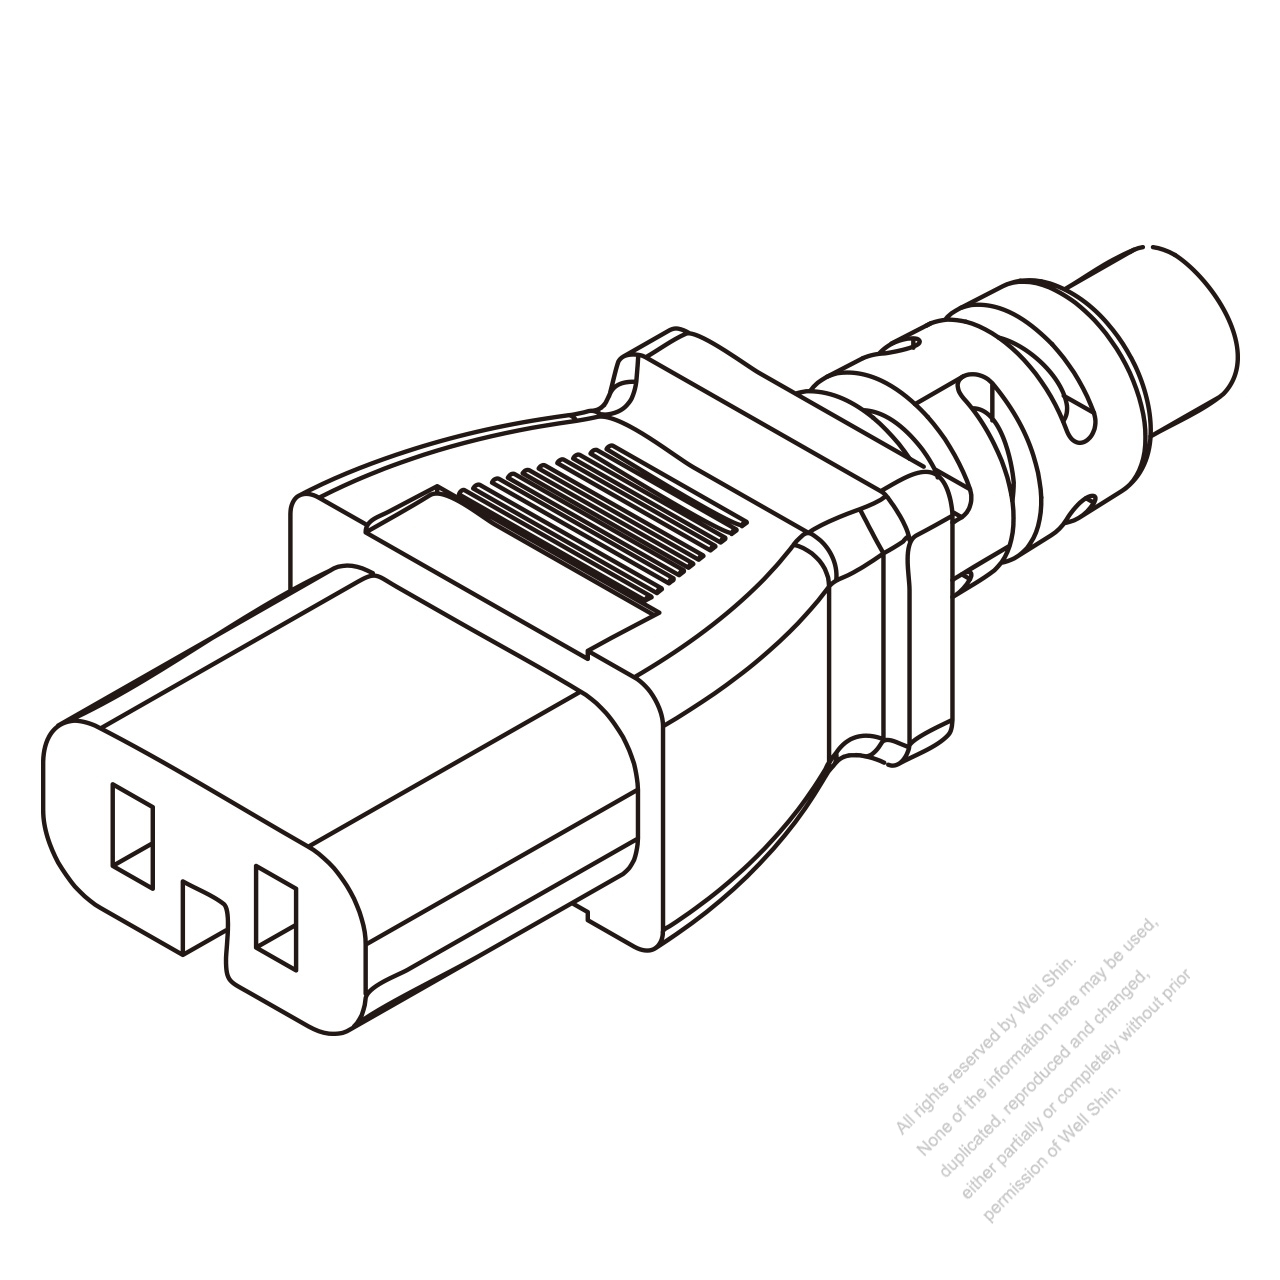 IEC 320 C11 Connectors 3-Pin Straight 10A 250V - Well Shin ...